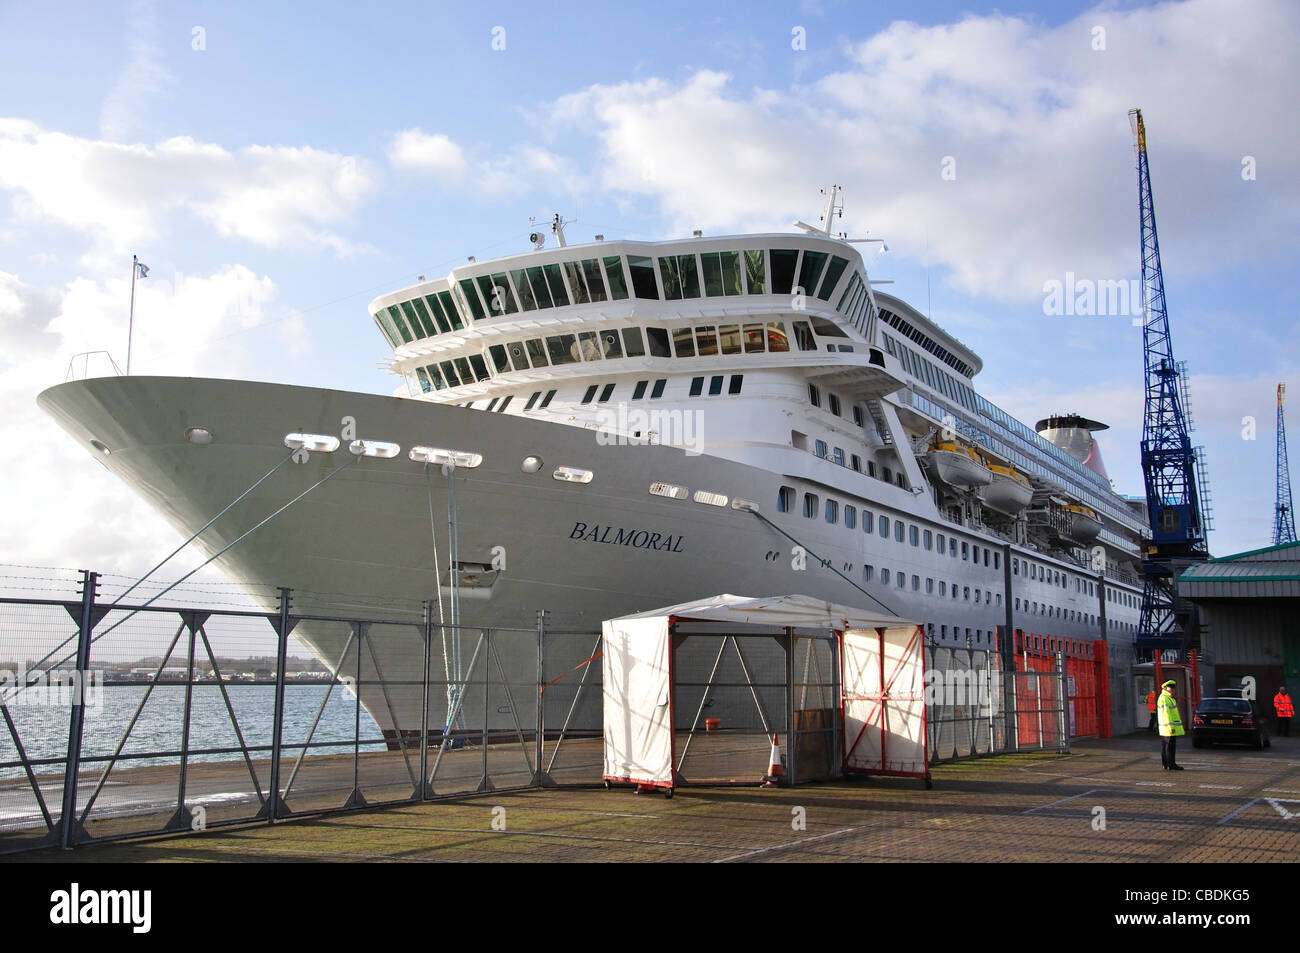 Fred Olsen M.S.Balmoral cruise ship berthed in Southampton, Hampshire, England, United Kingdom - Stock Image